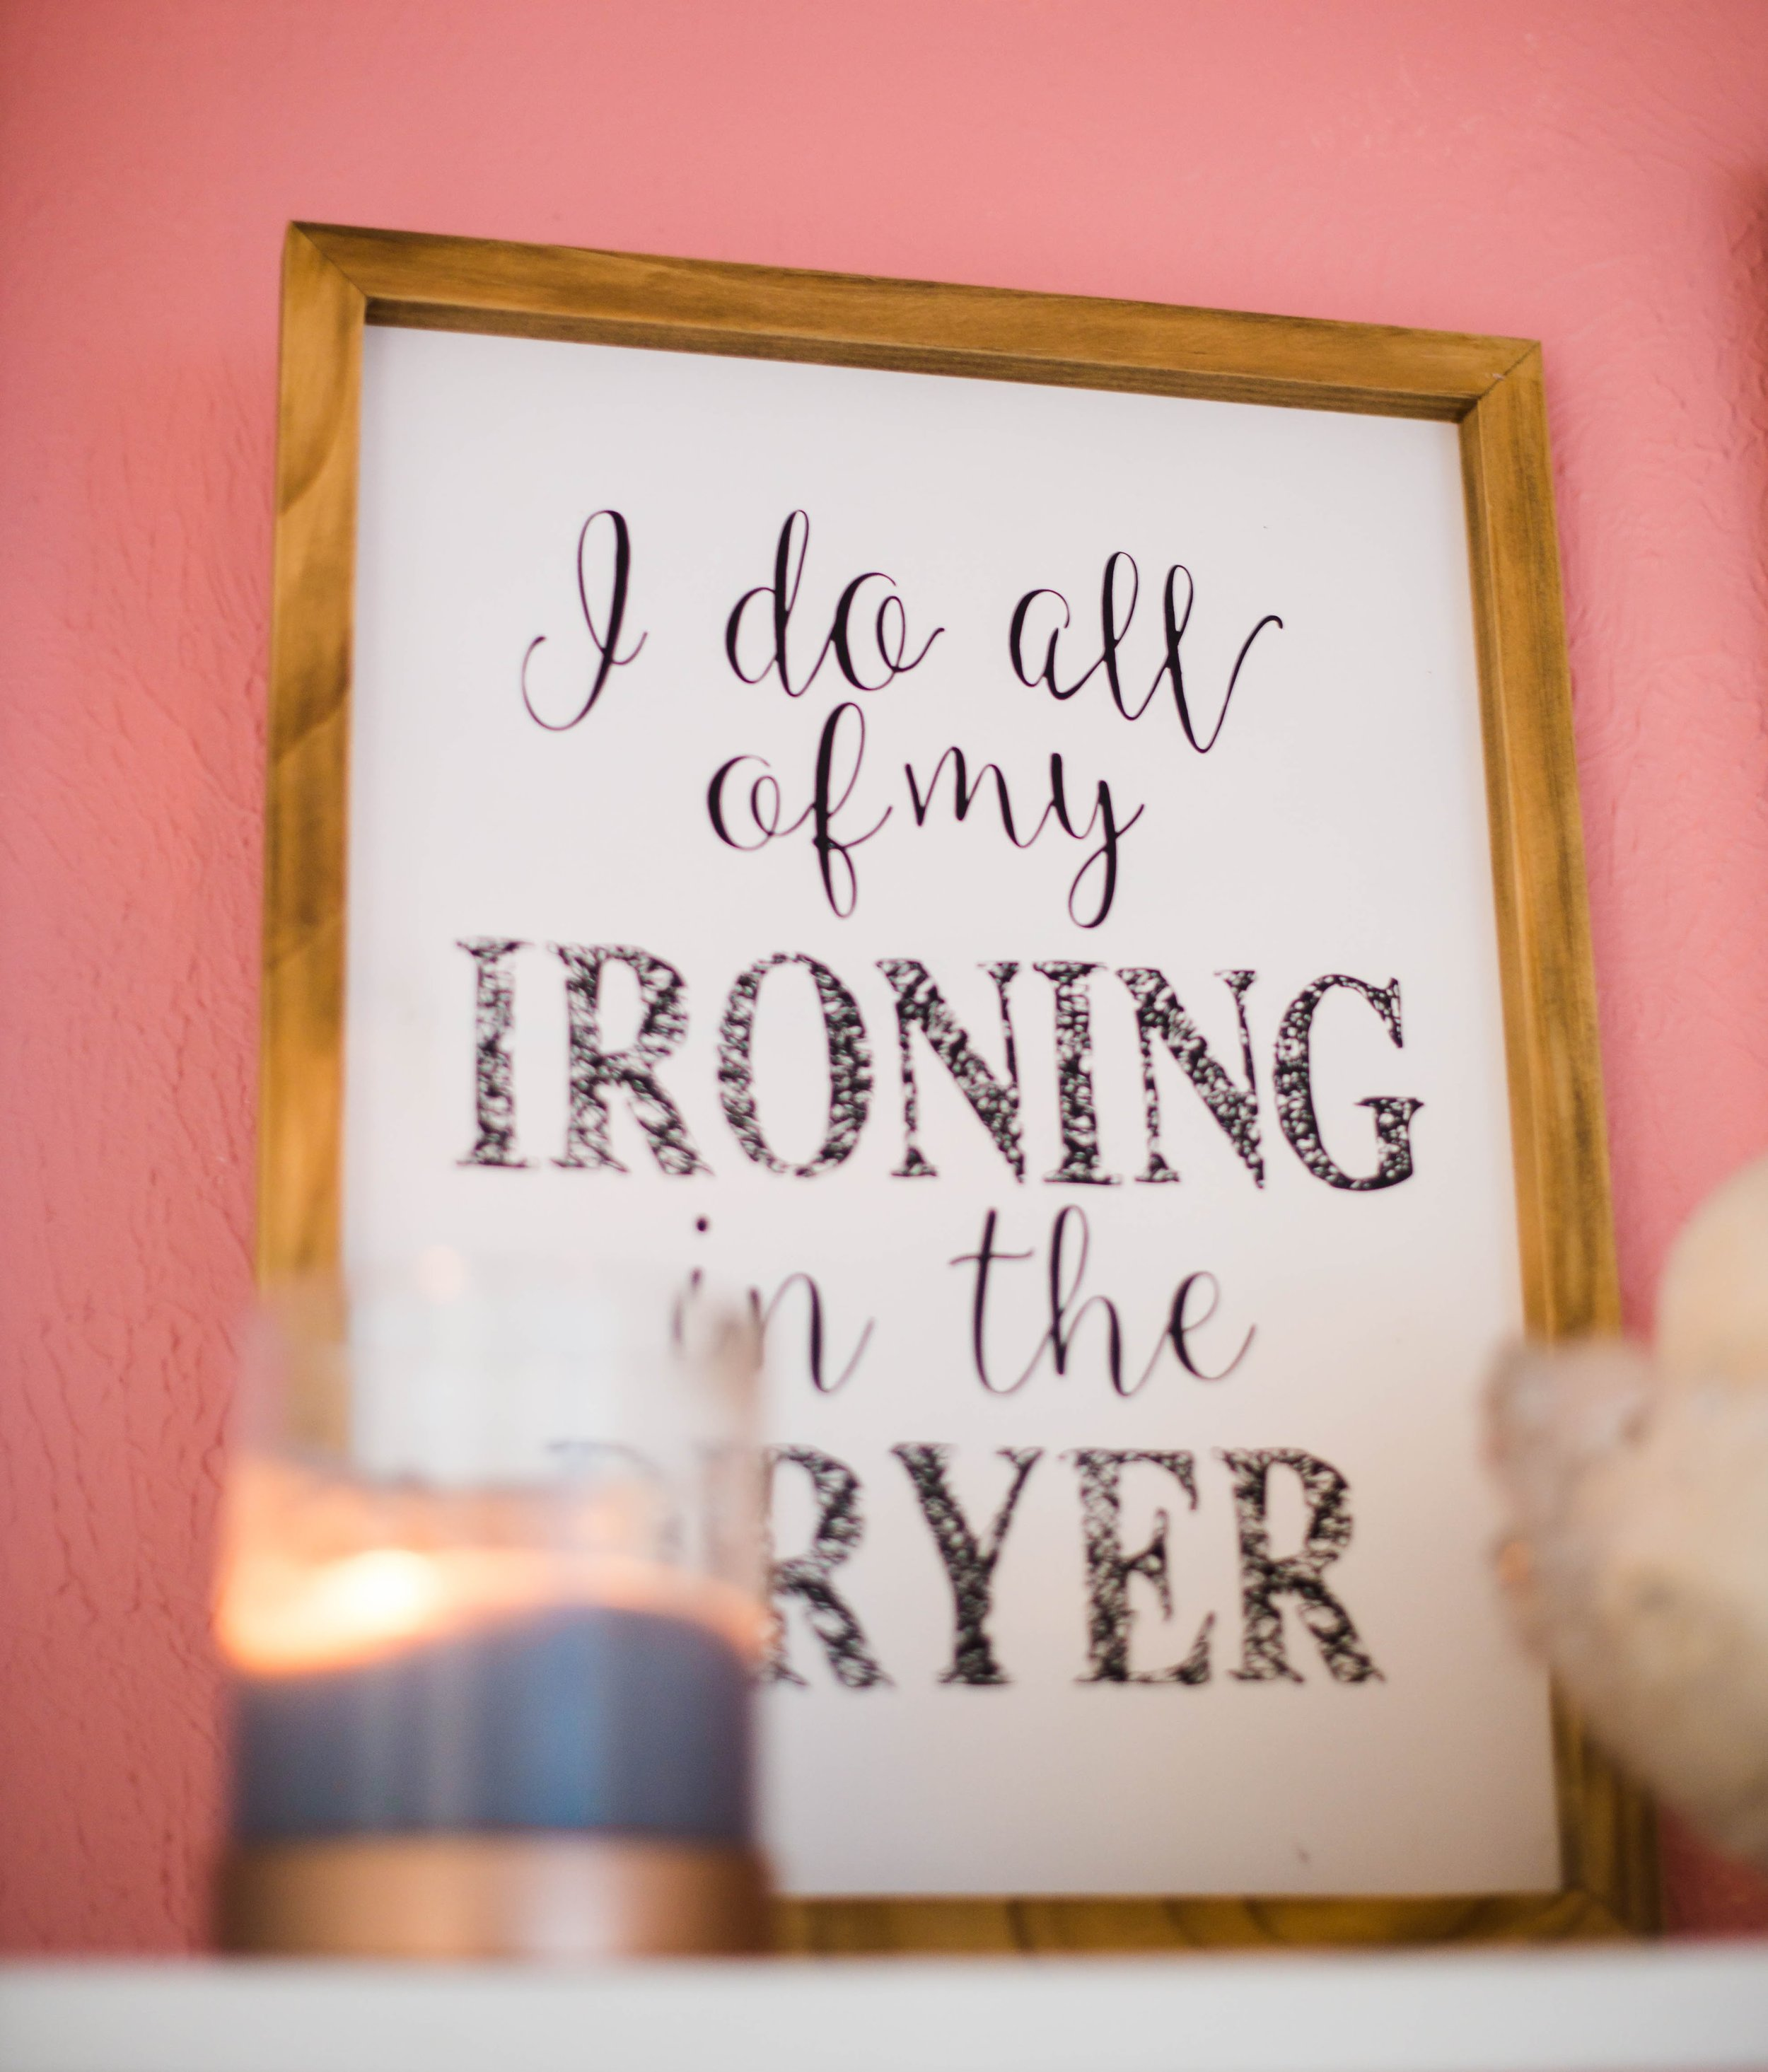 Laundry Quote: I do all of my ironing in the dryer.